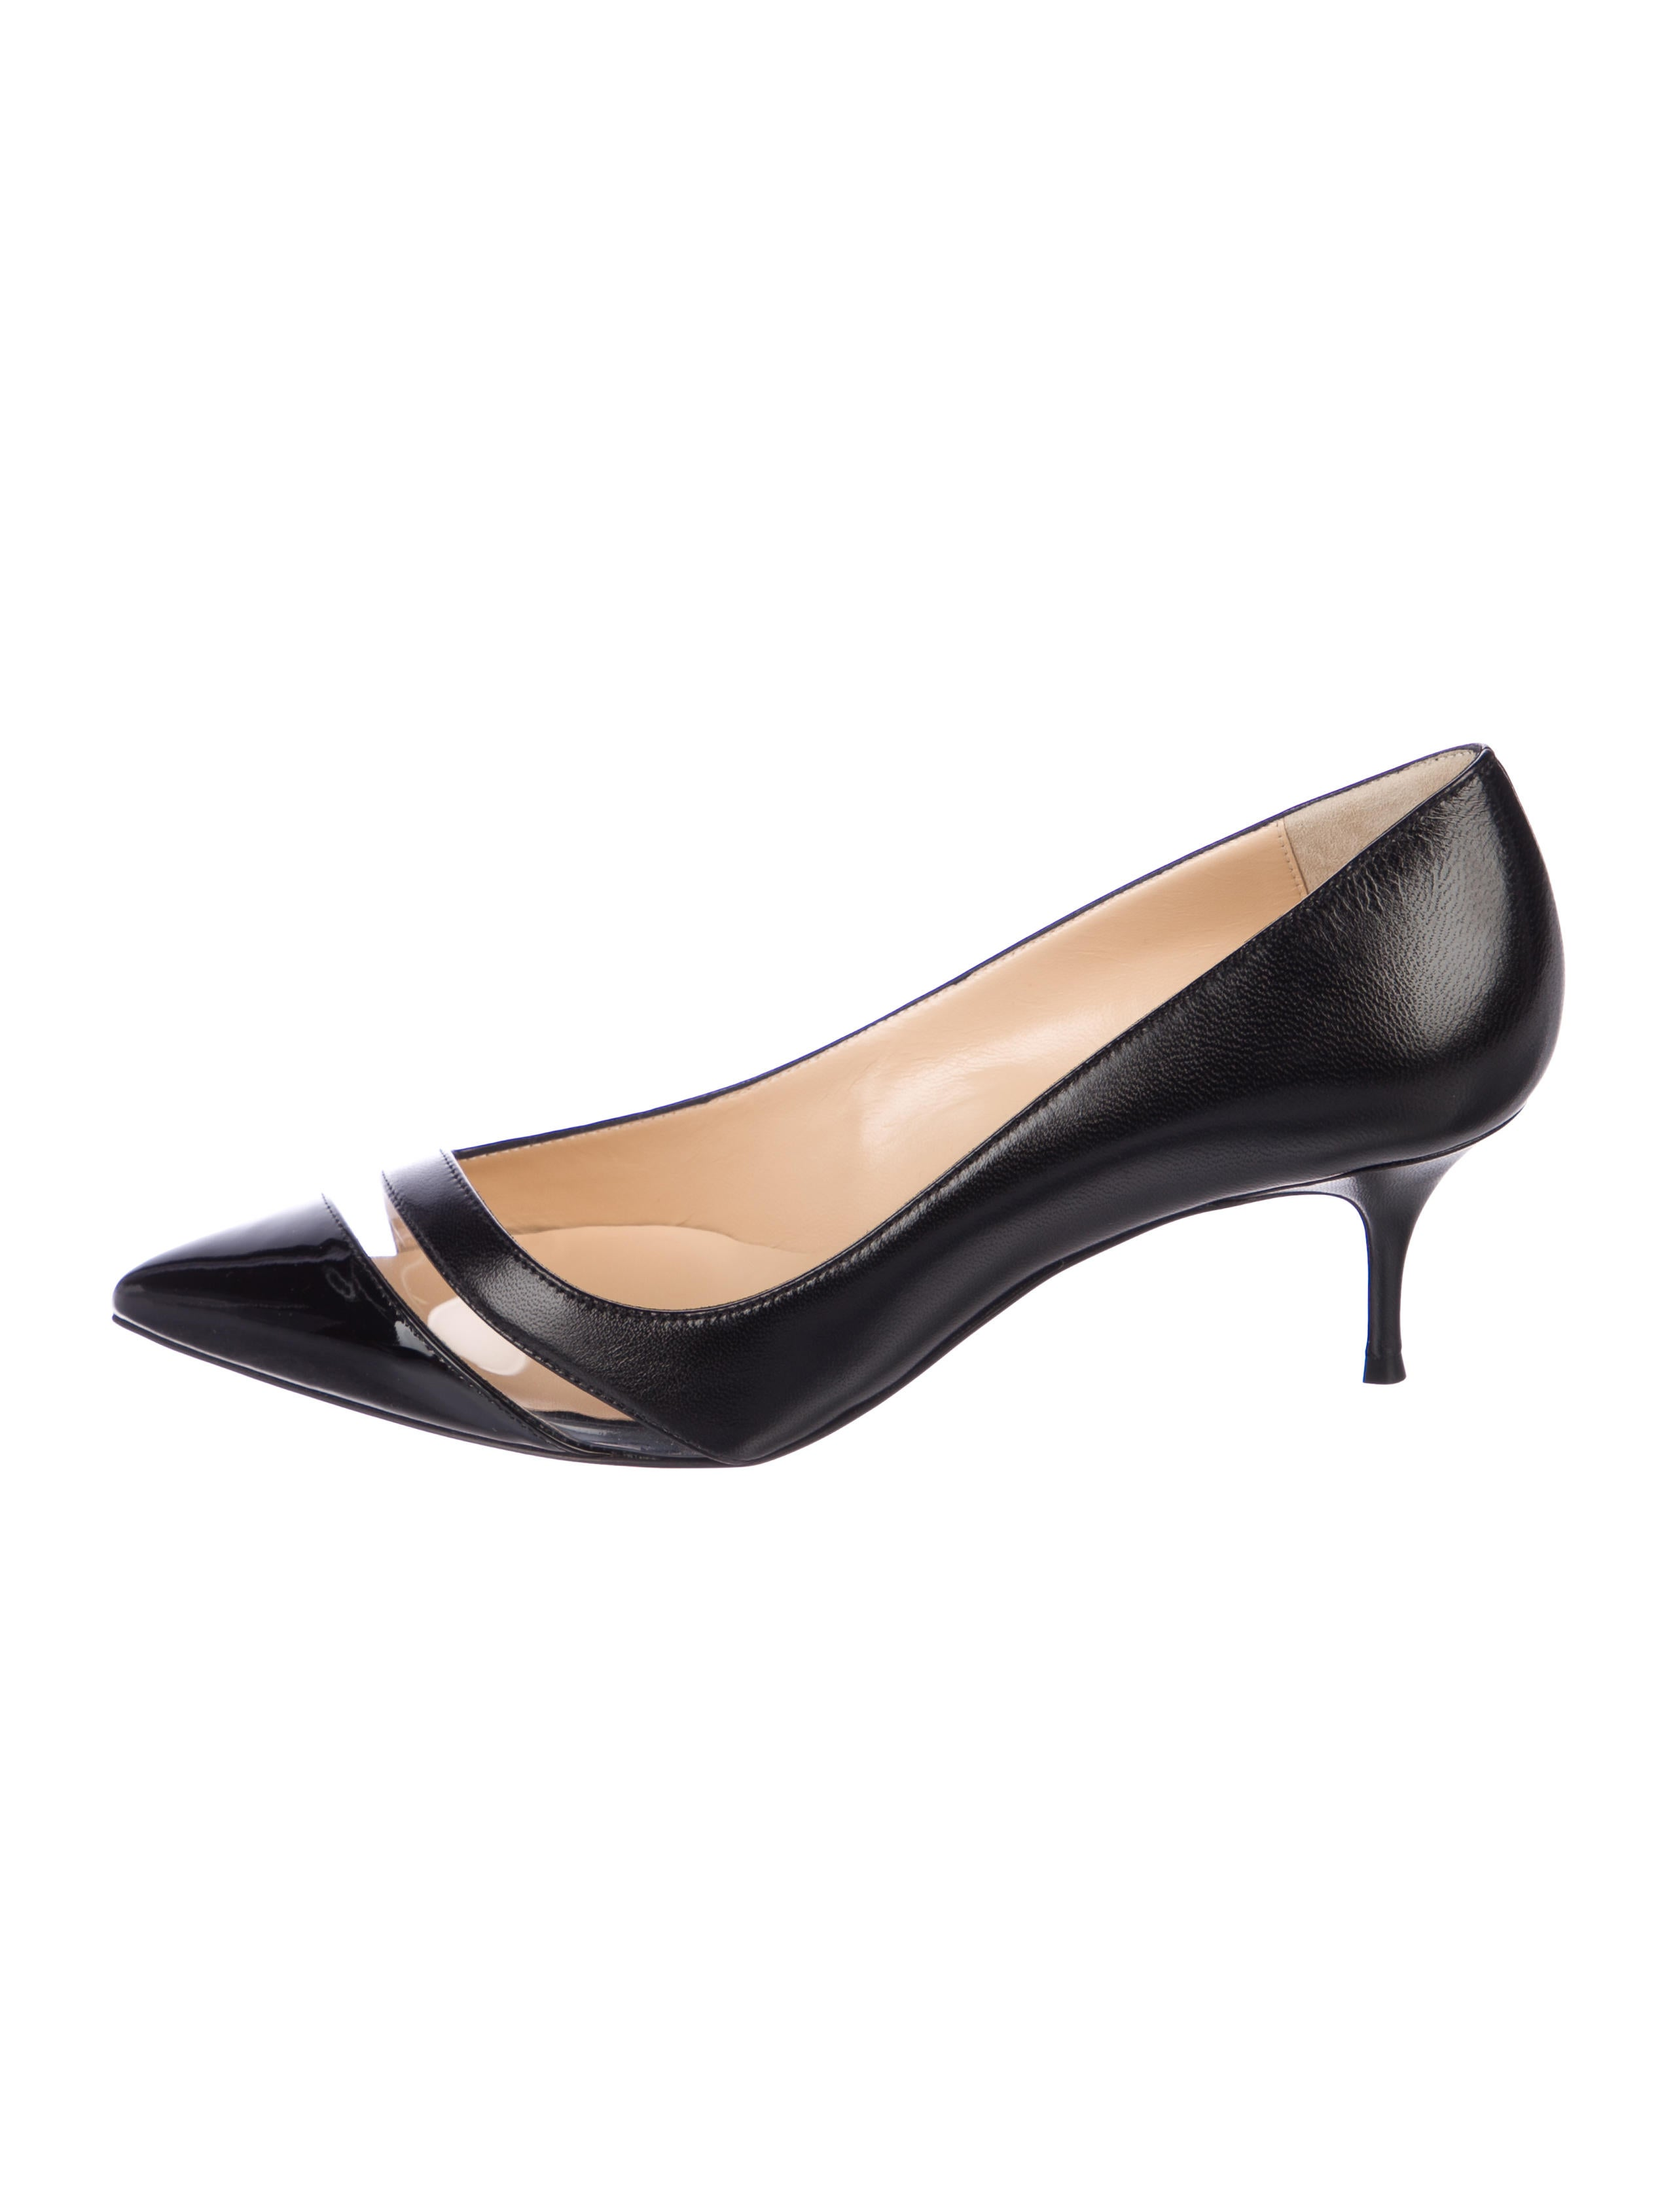 new product 48402 753be 17th Floor 55 Leather Pumps w/ Tags